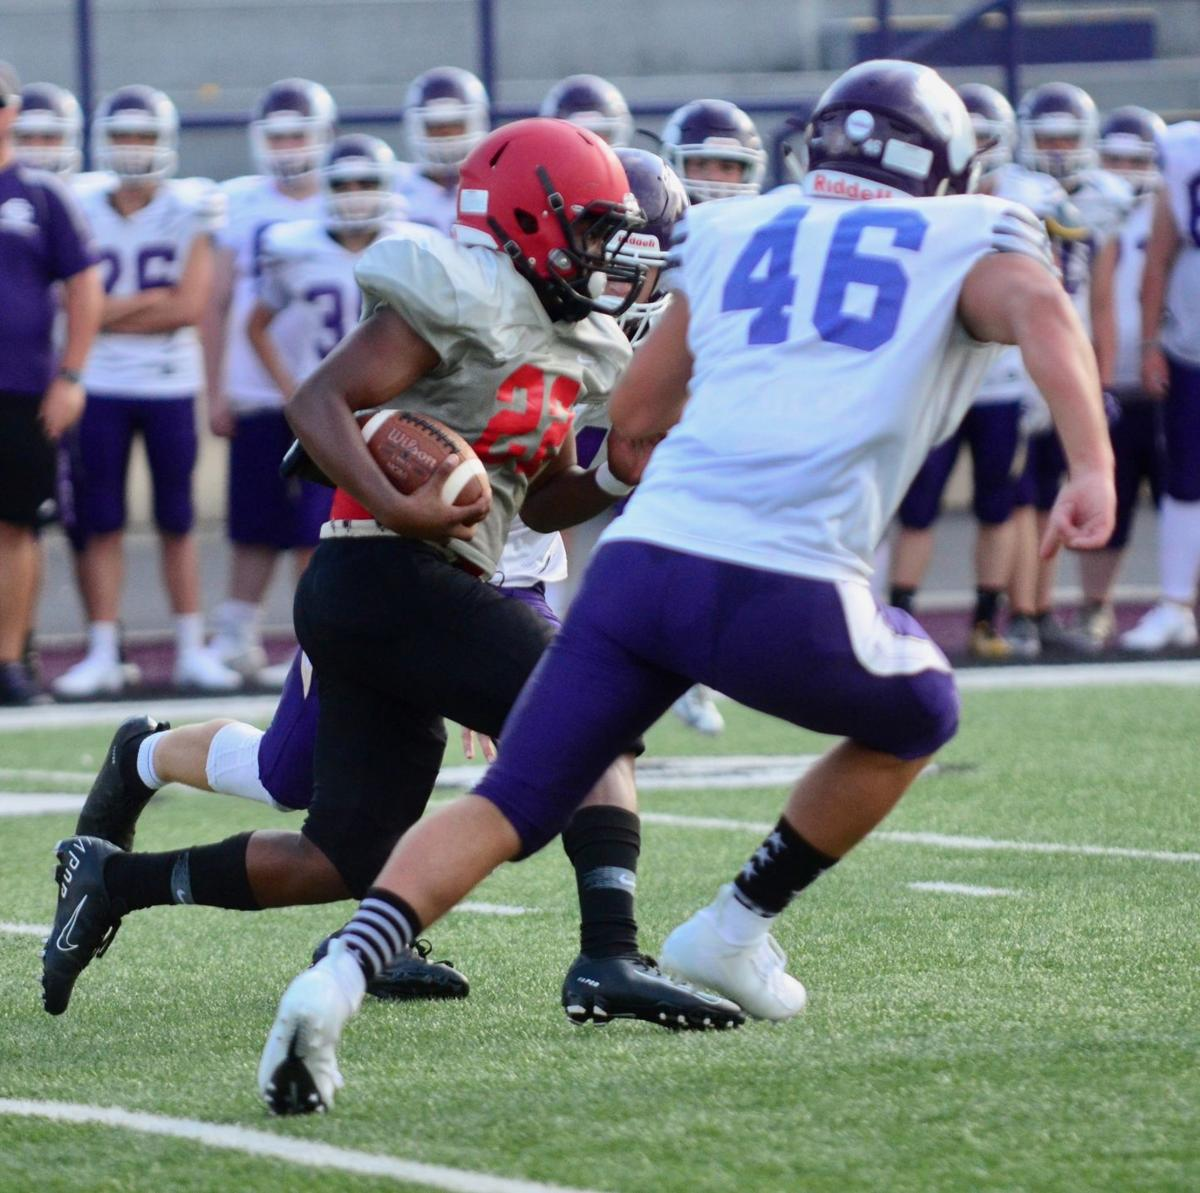 Sevier County scrimmage a 'good starting point' for CCHS